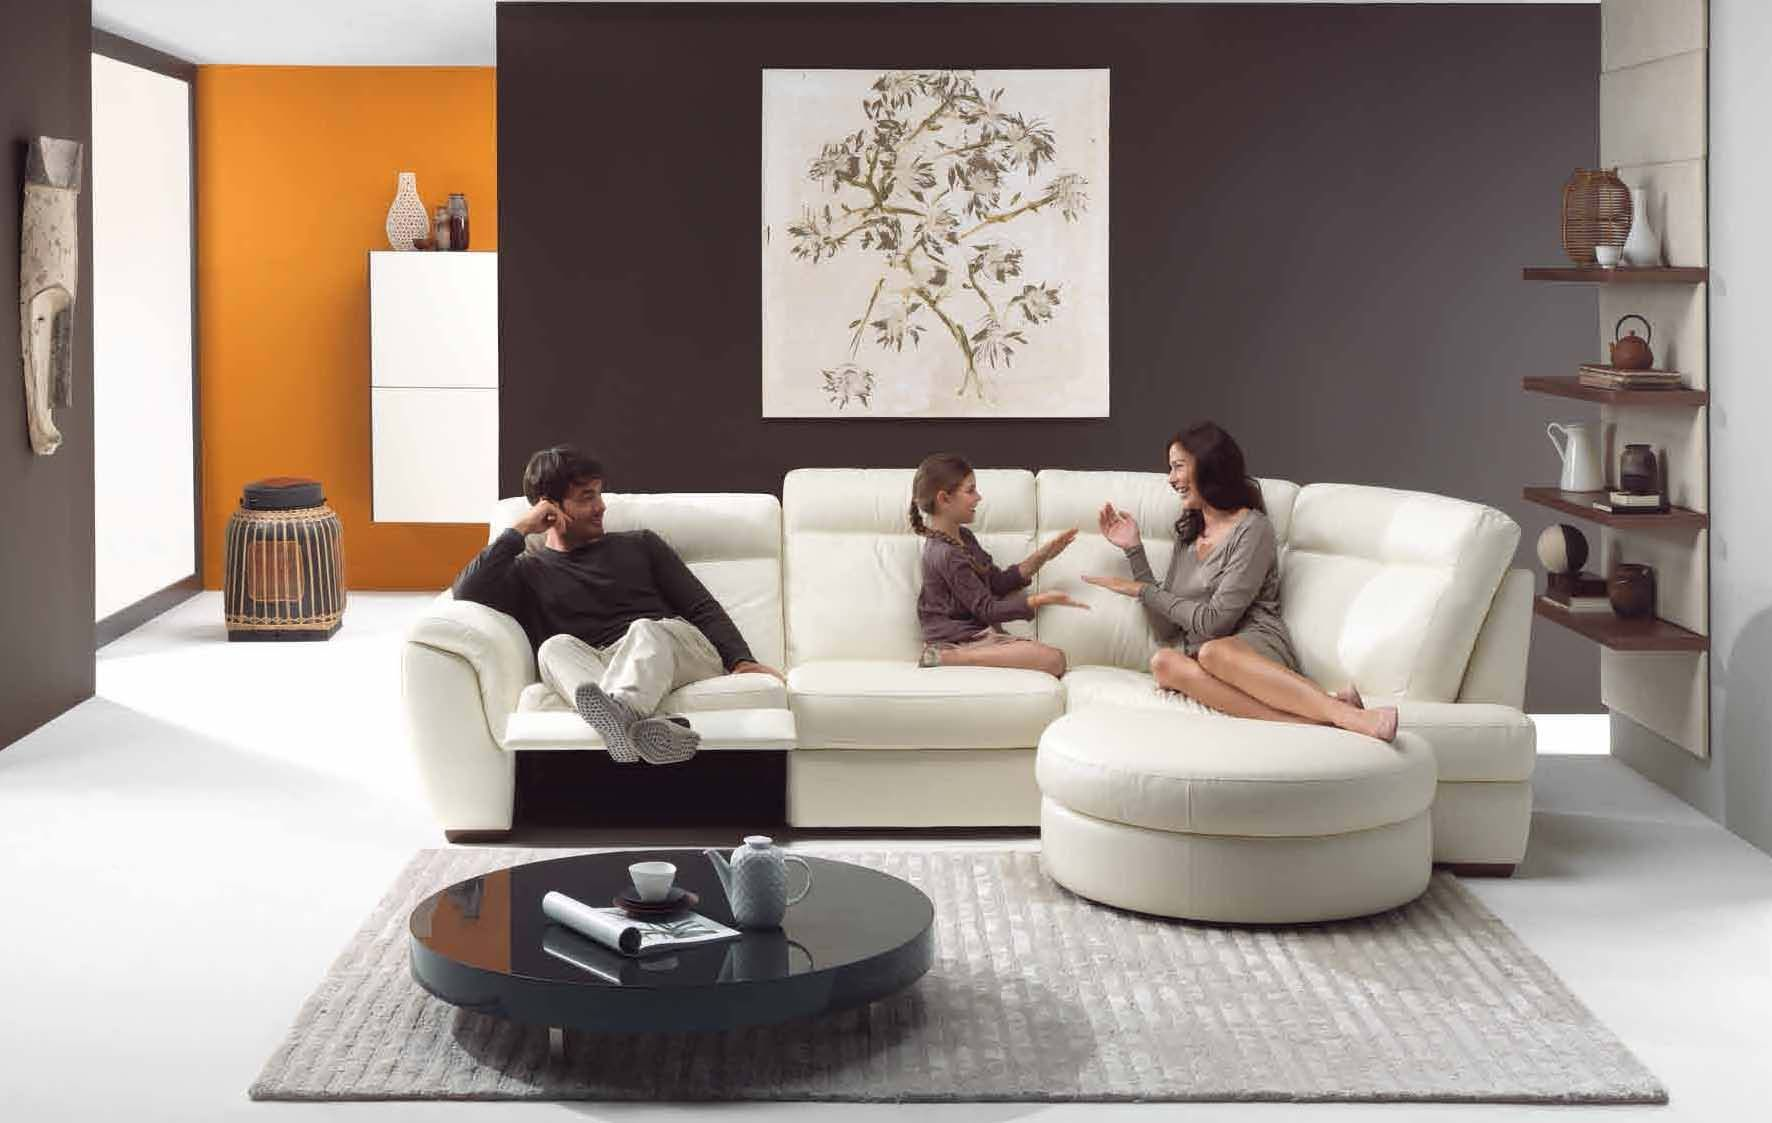 Living Room Styles 2010 by Natuzzi | Pinterest | Living room styles ...